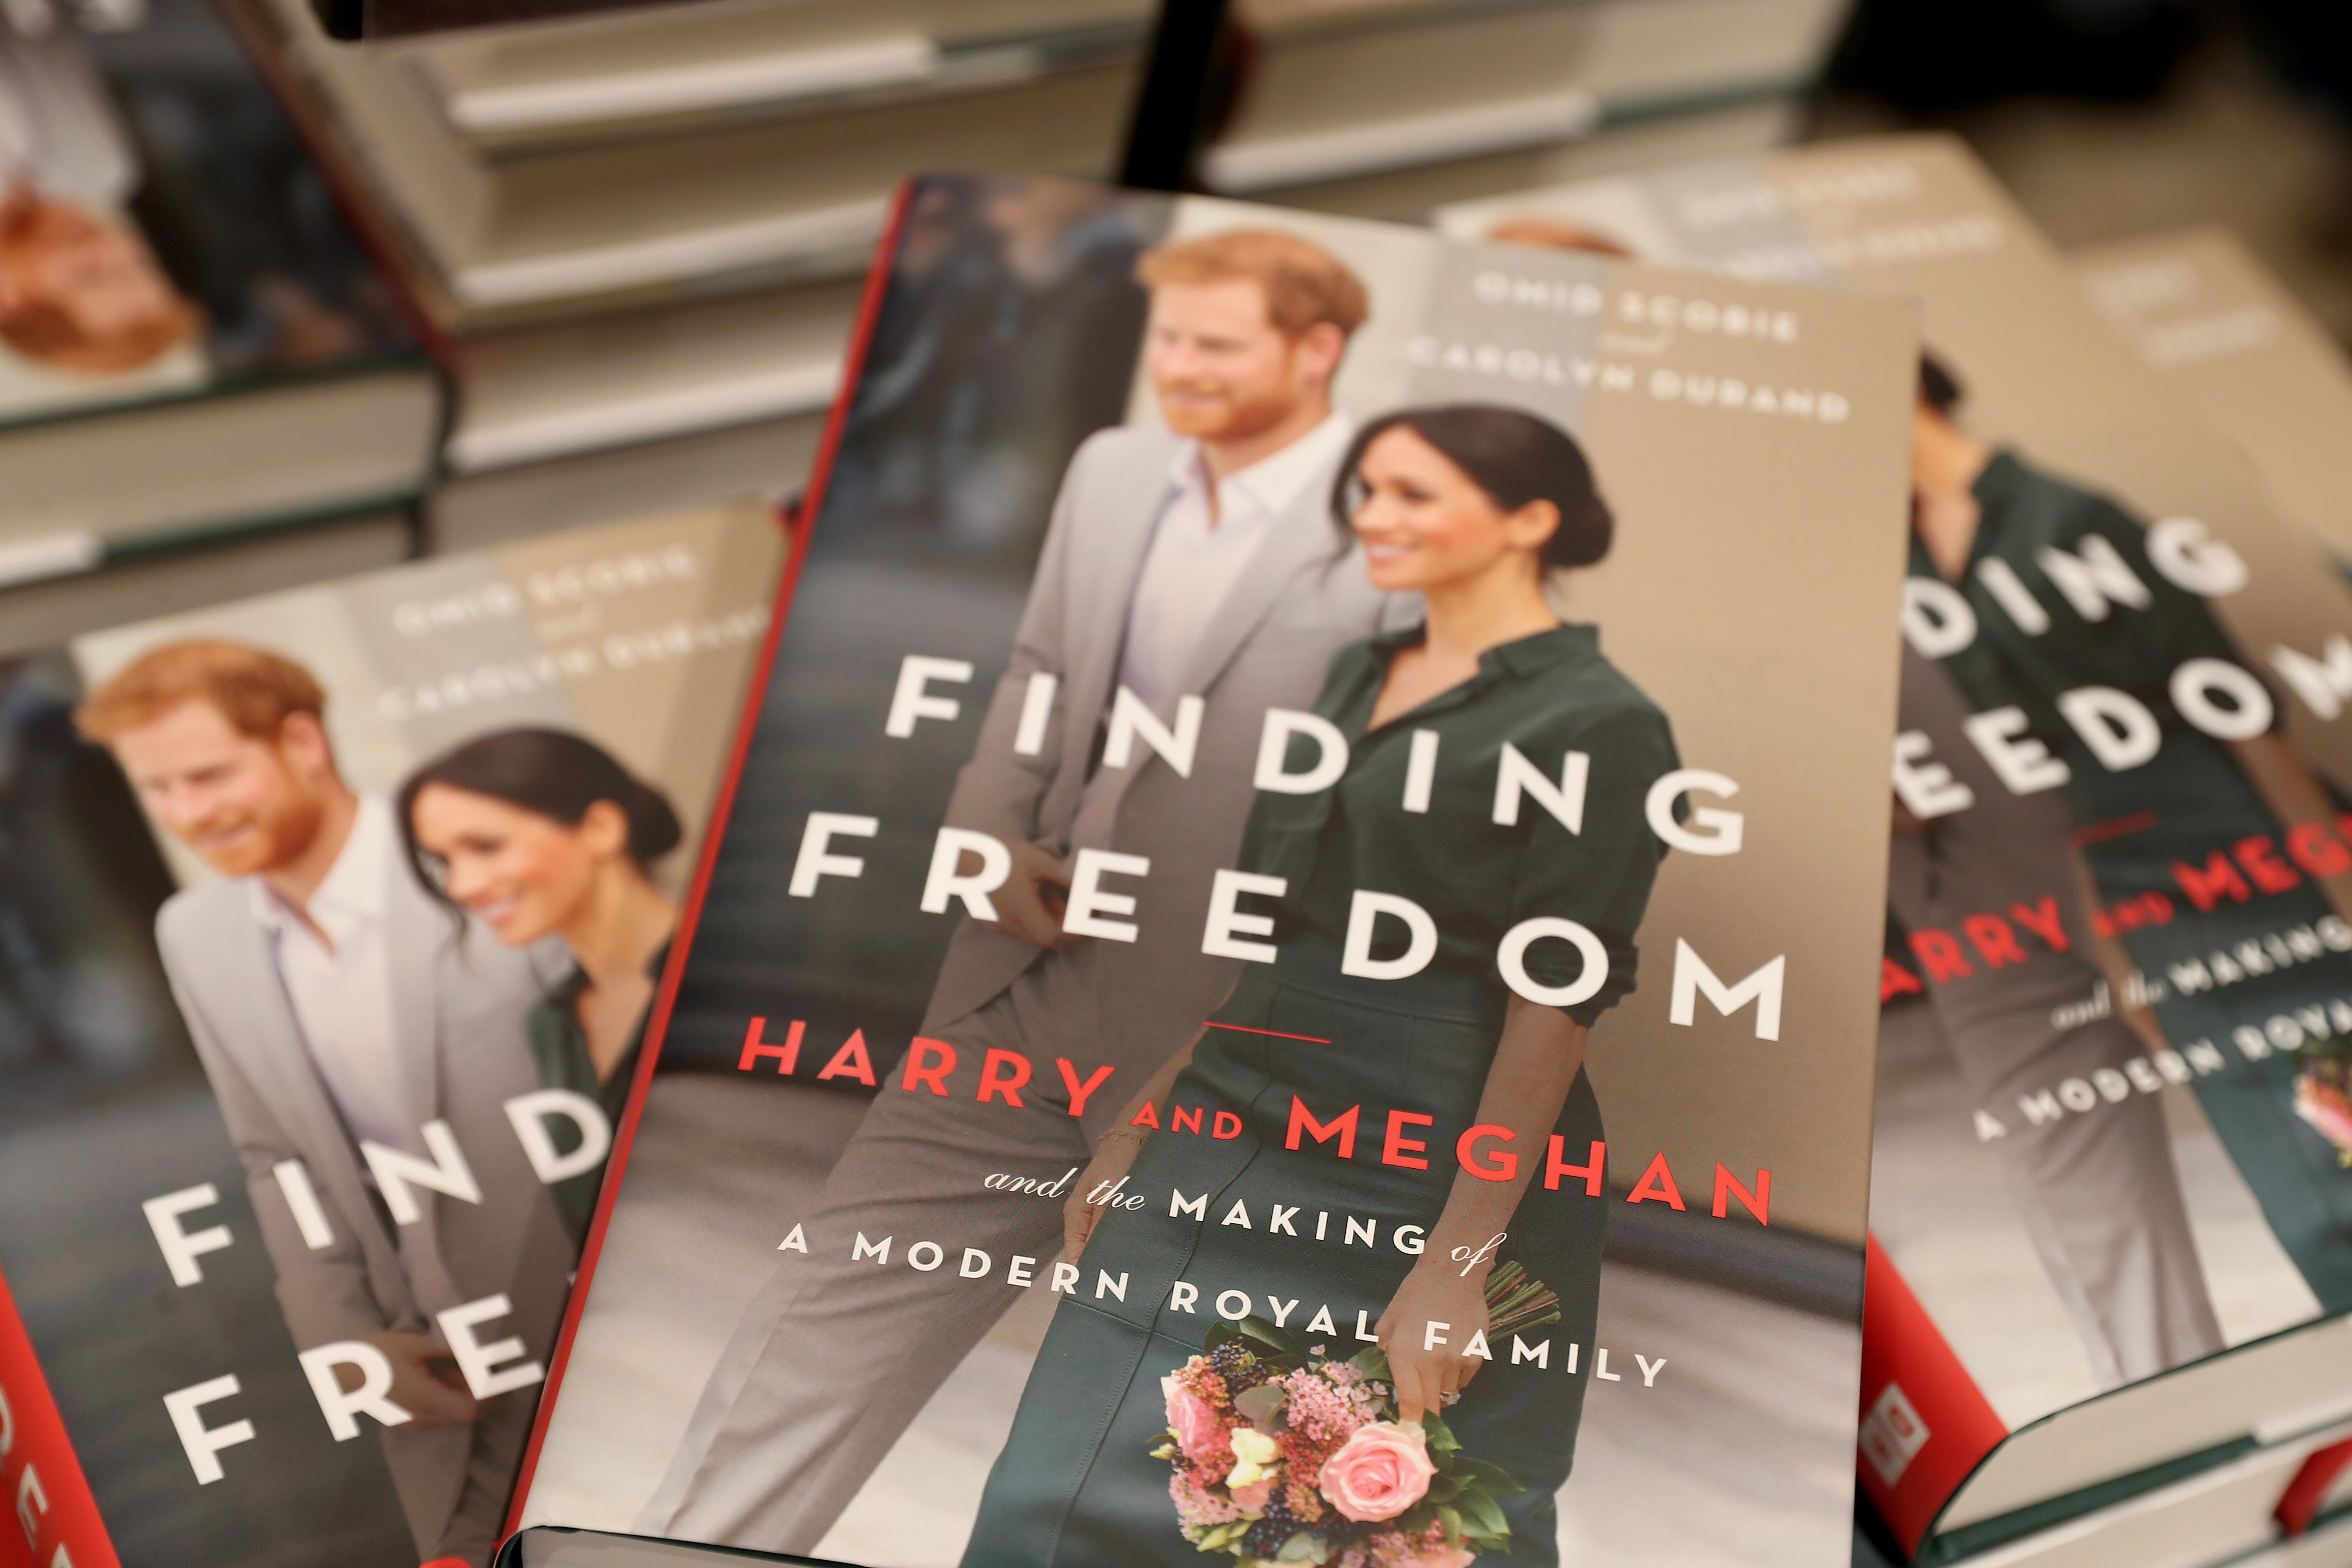 Omid Scobie and Carolyn Durand's Finding Freedom was published on Aug. 11. (Photo: Chris Jackson/Getty Images)